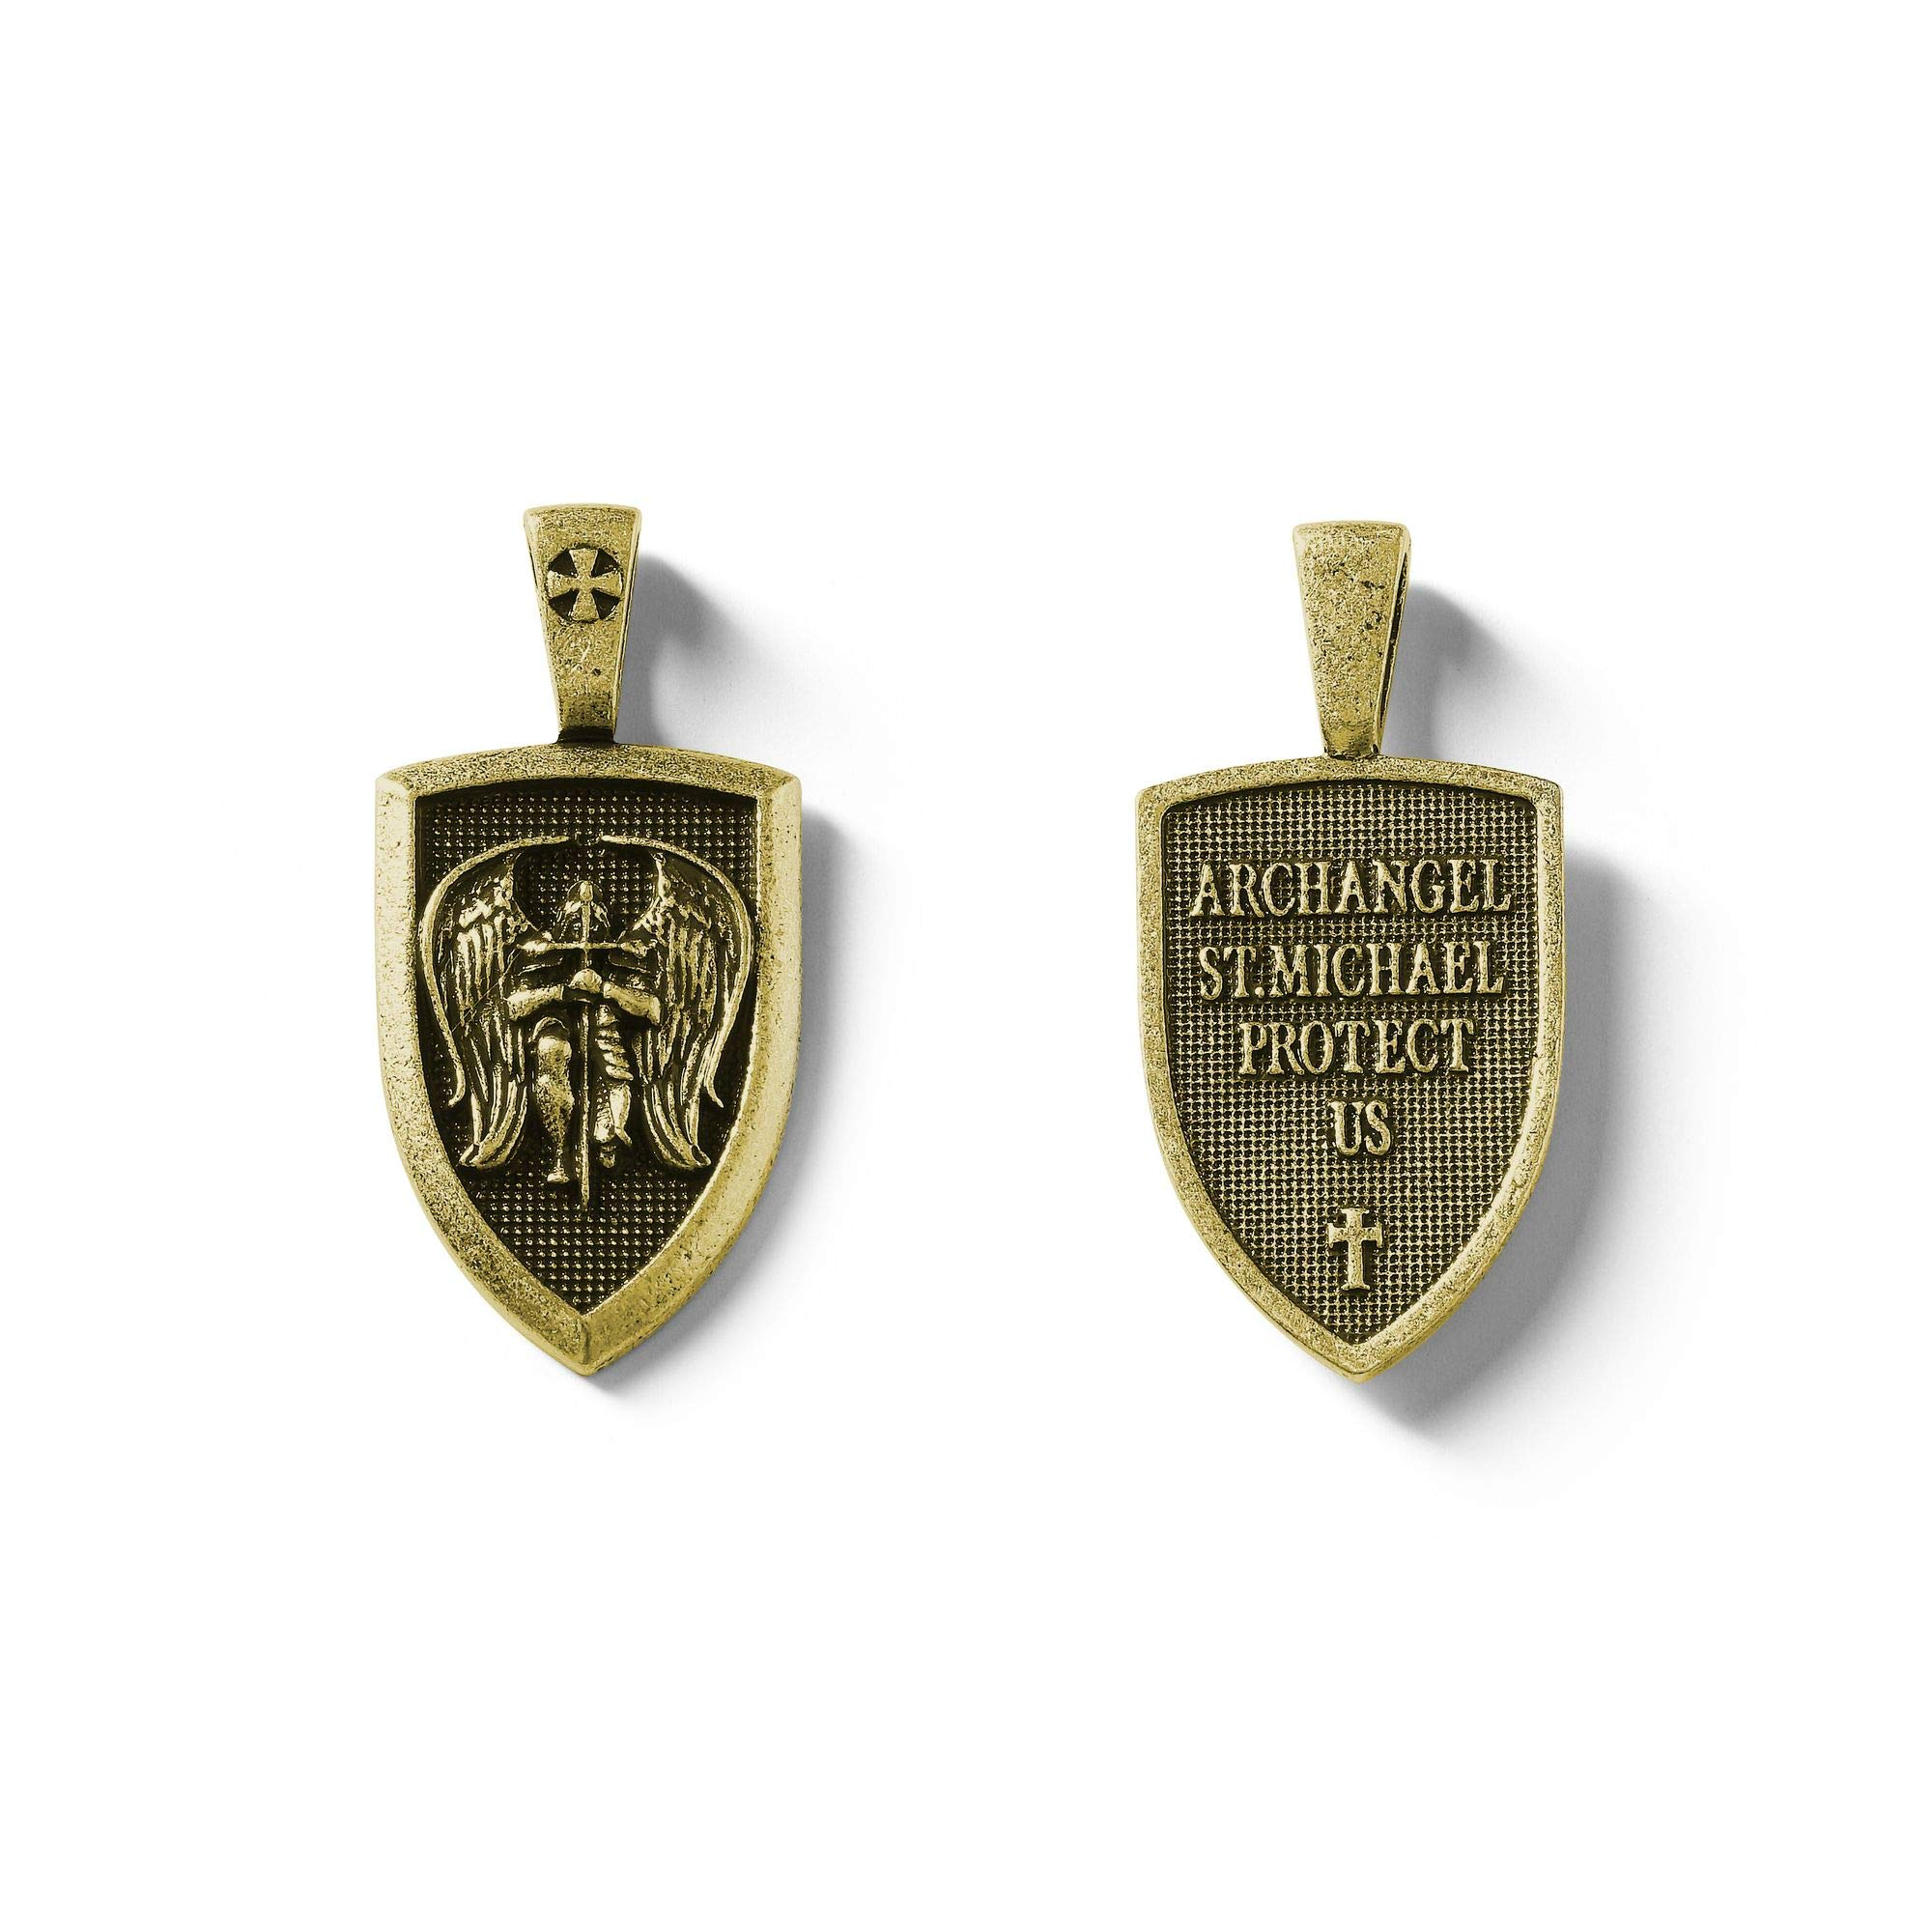 HANDMADE JEWELLERY - Viking Necklace Archangel St.Michael Protect Me Saint Shield Protection Pendant Jewelry -Gift for Men - Women - Adult - Luxury Gift (style4)